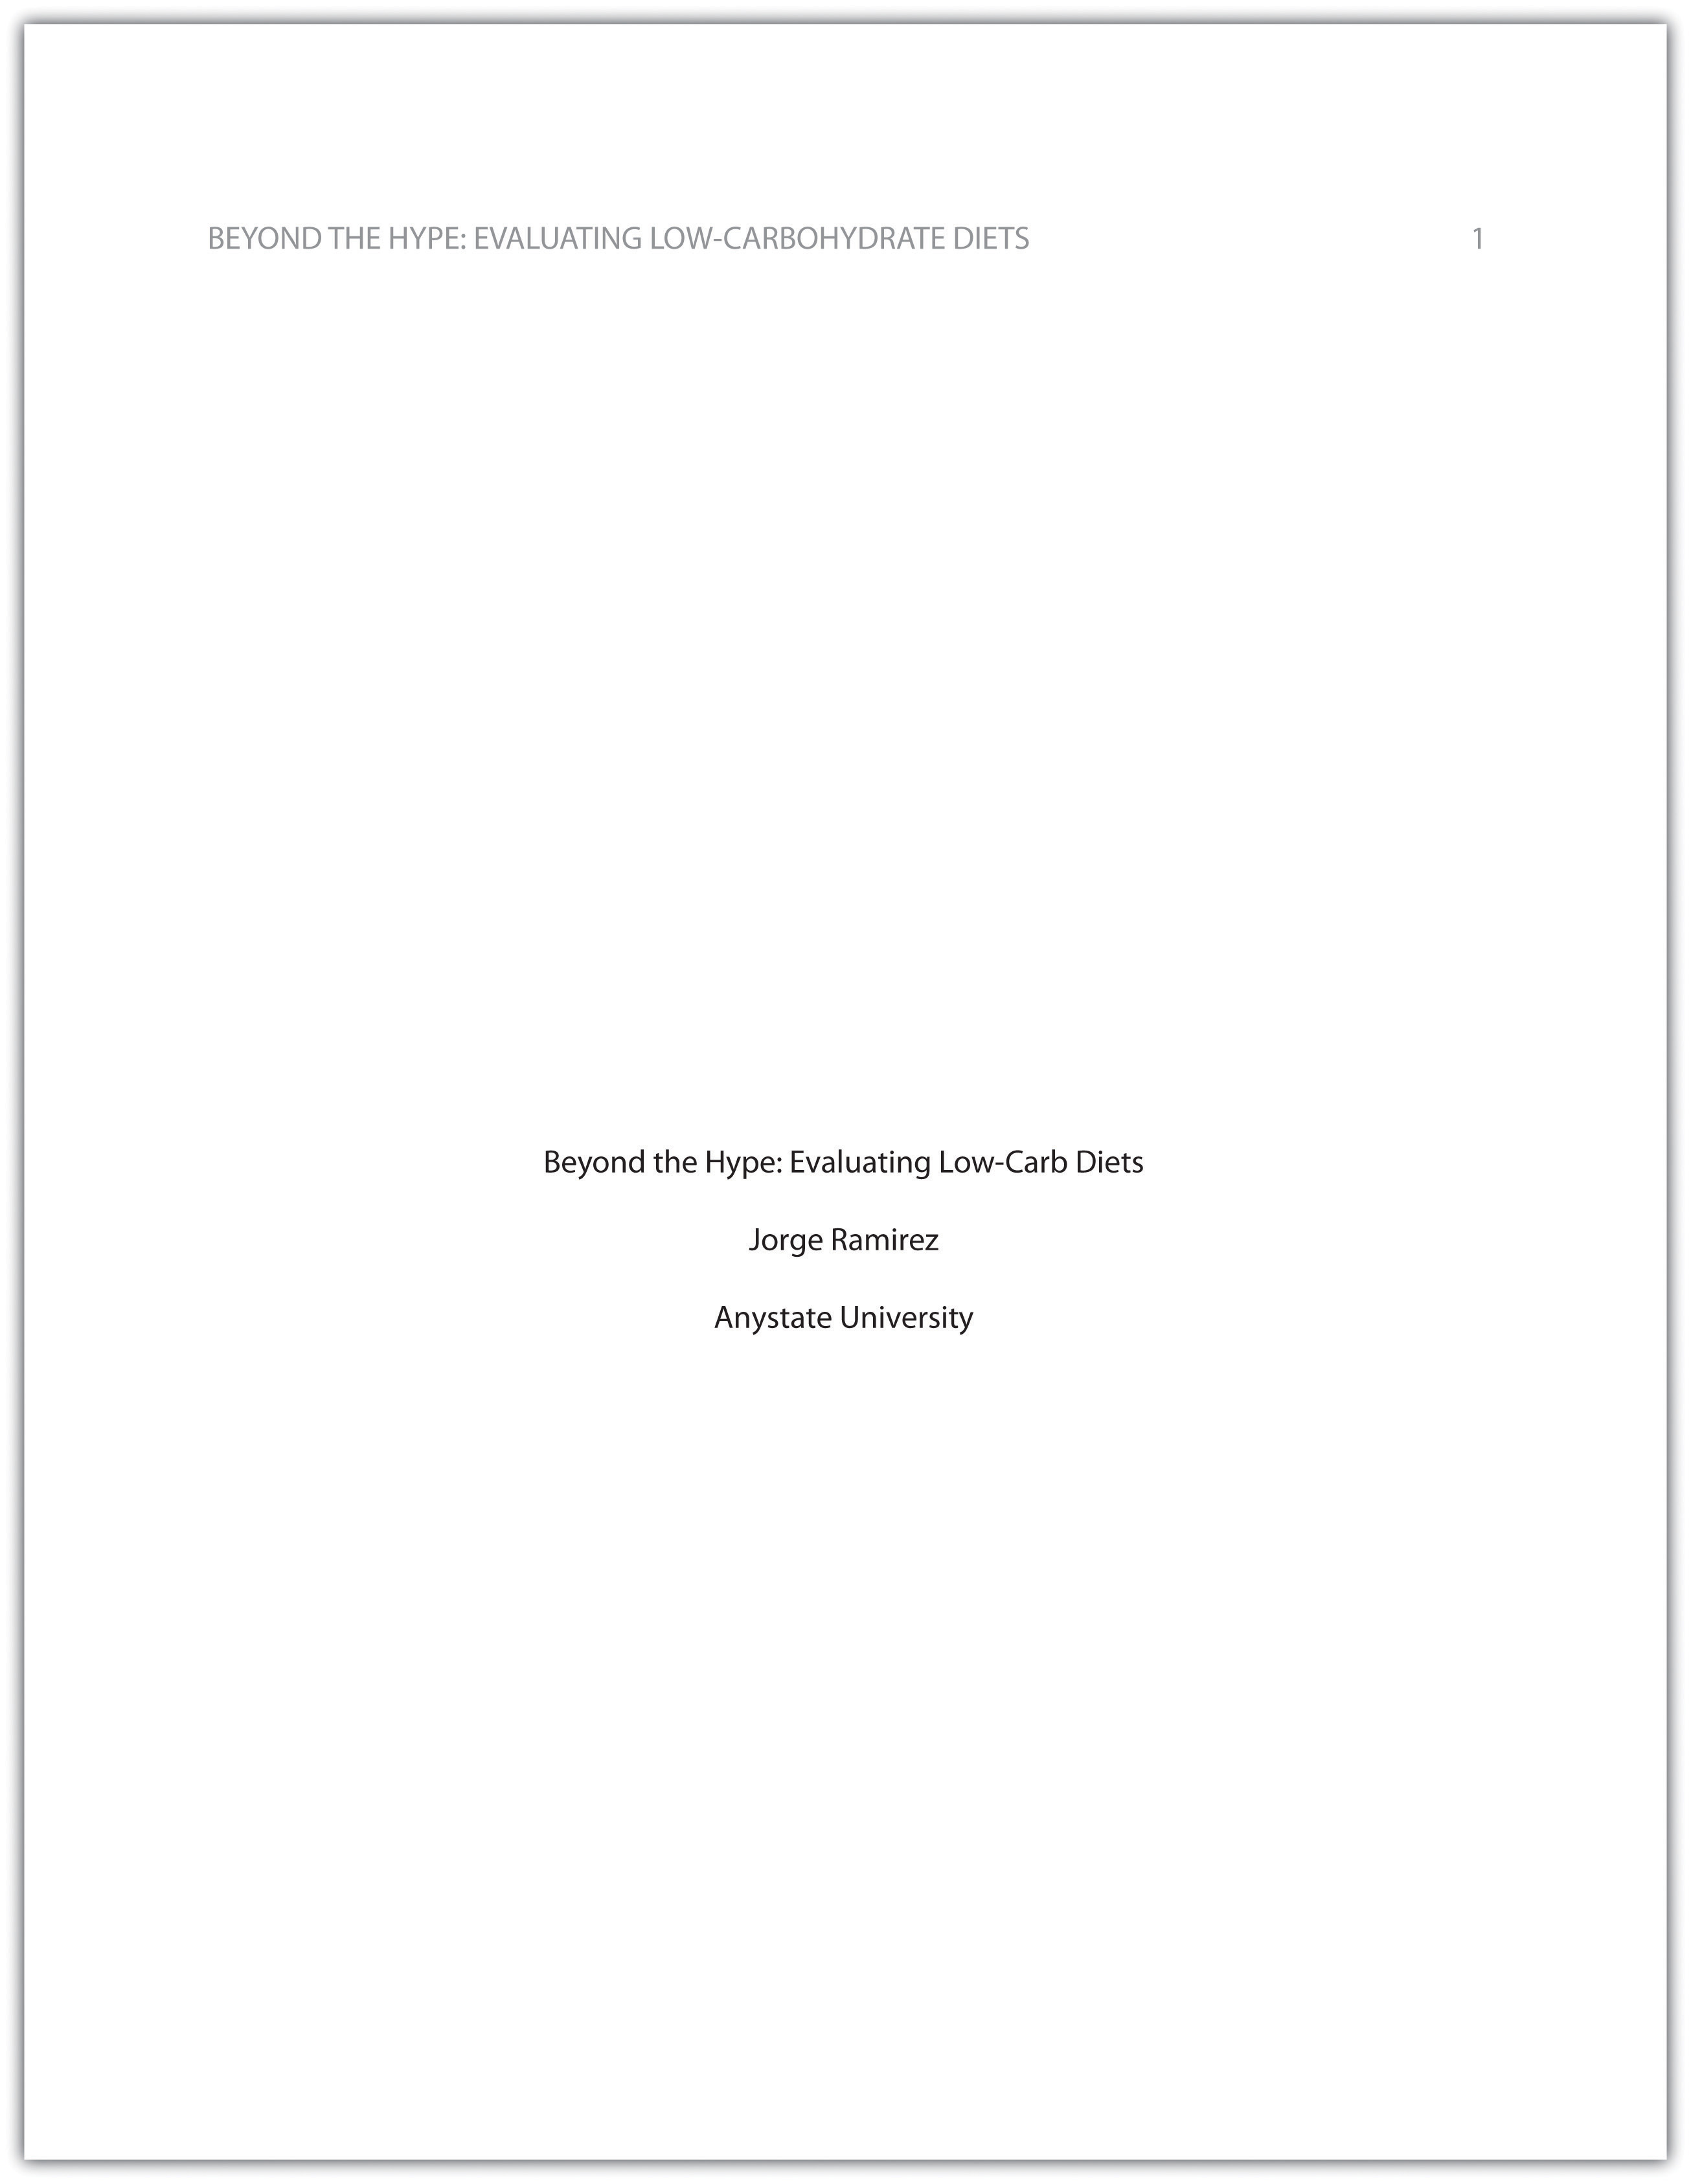 How to Write A Top Level View for a Research-Paper